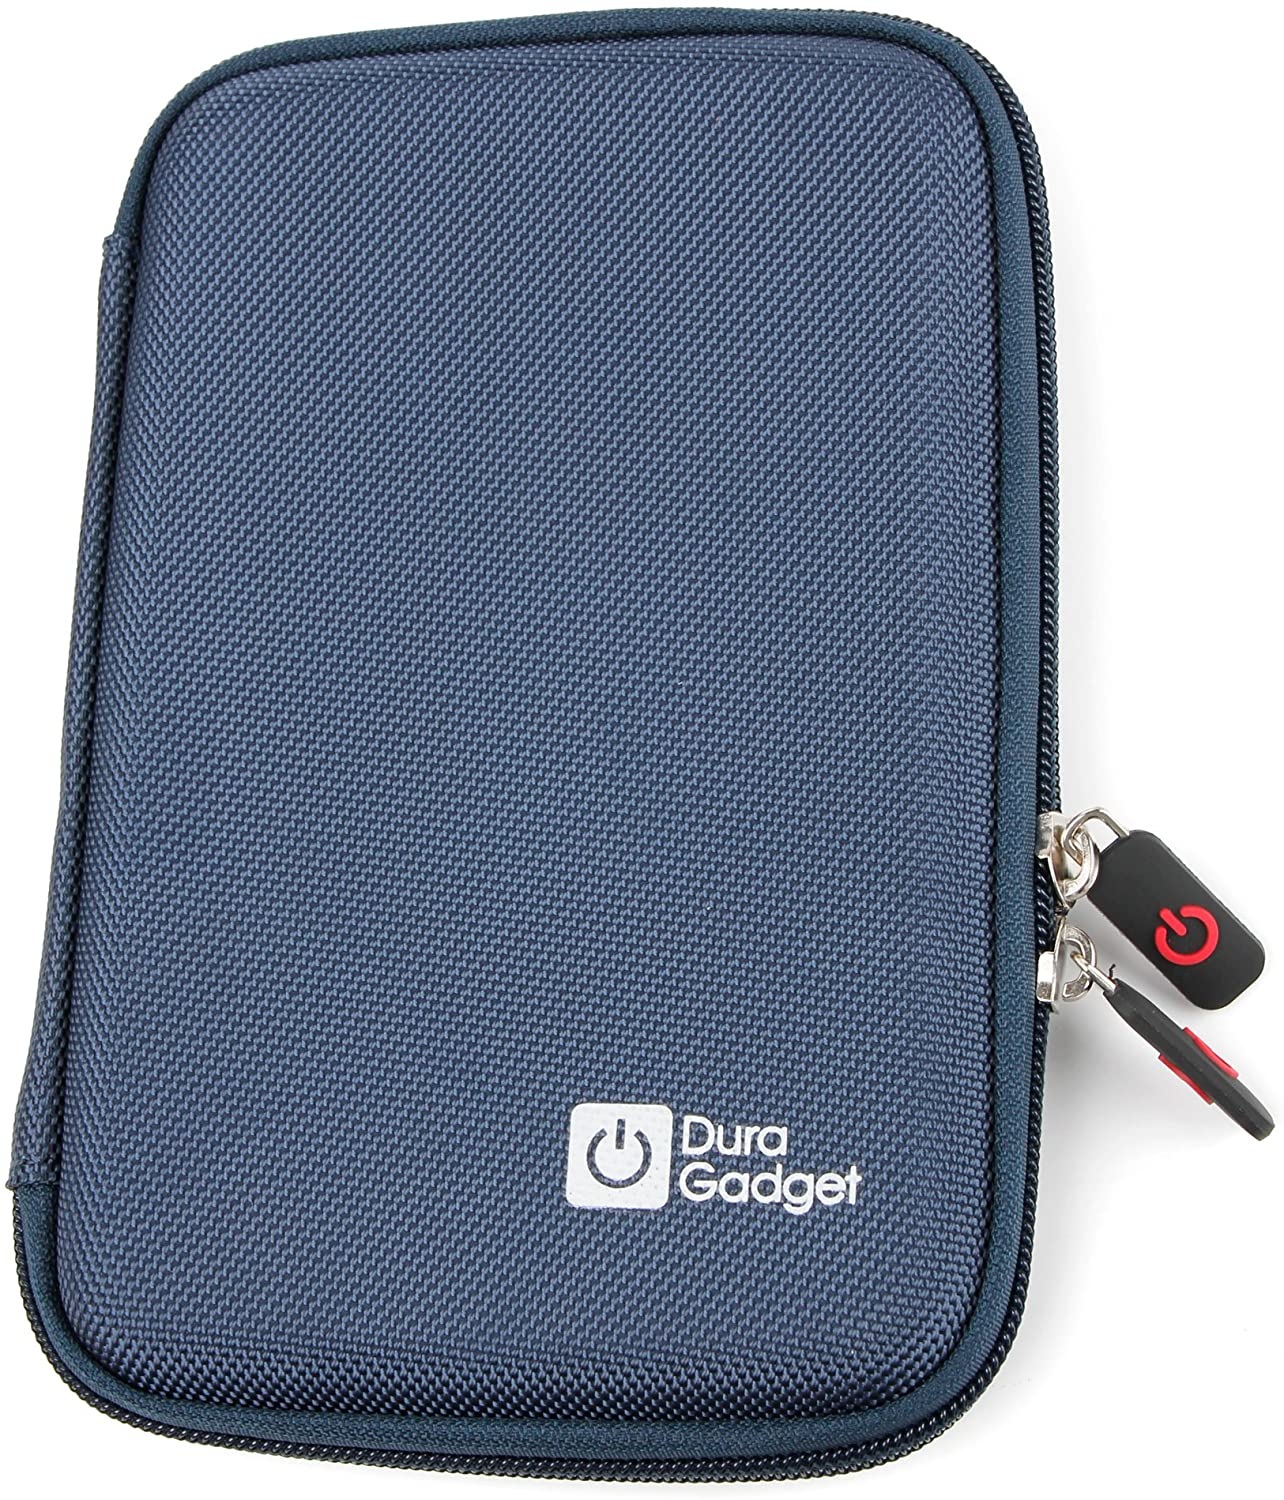 DURAGADGET Blue Shock-Absorbing Hard EVA Shell Case - Suitable for use with The JYJ 7